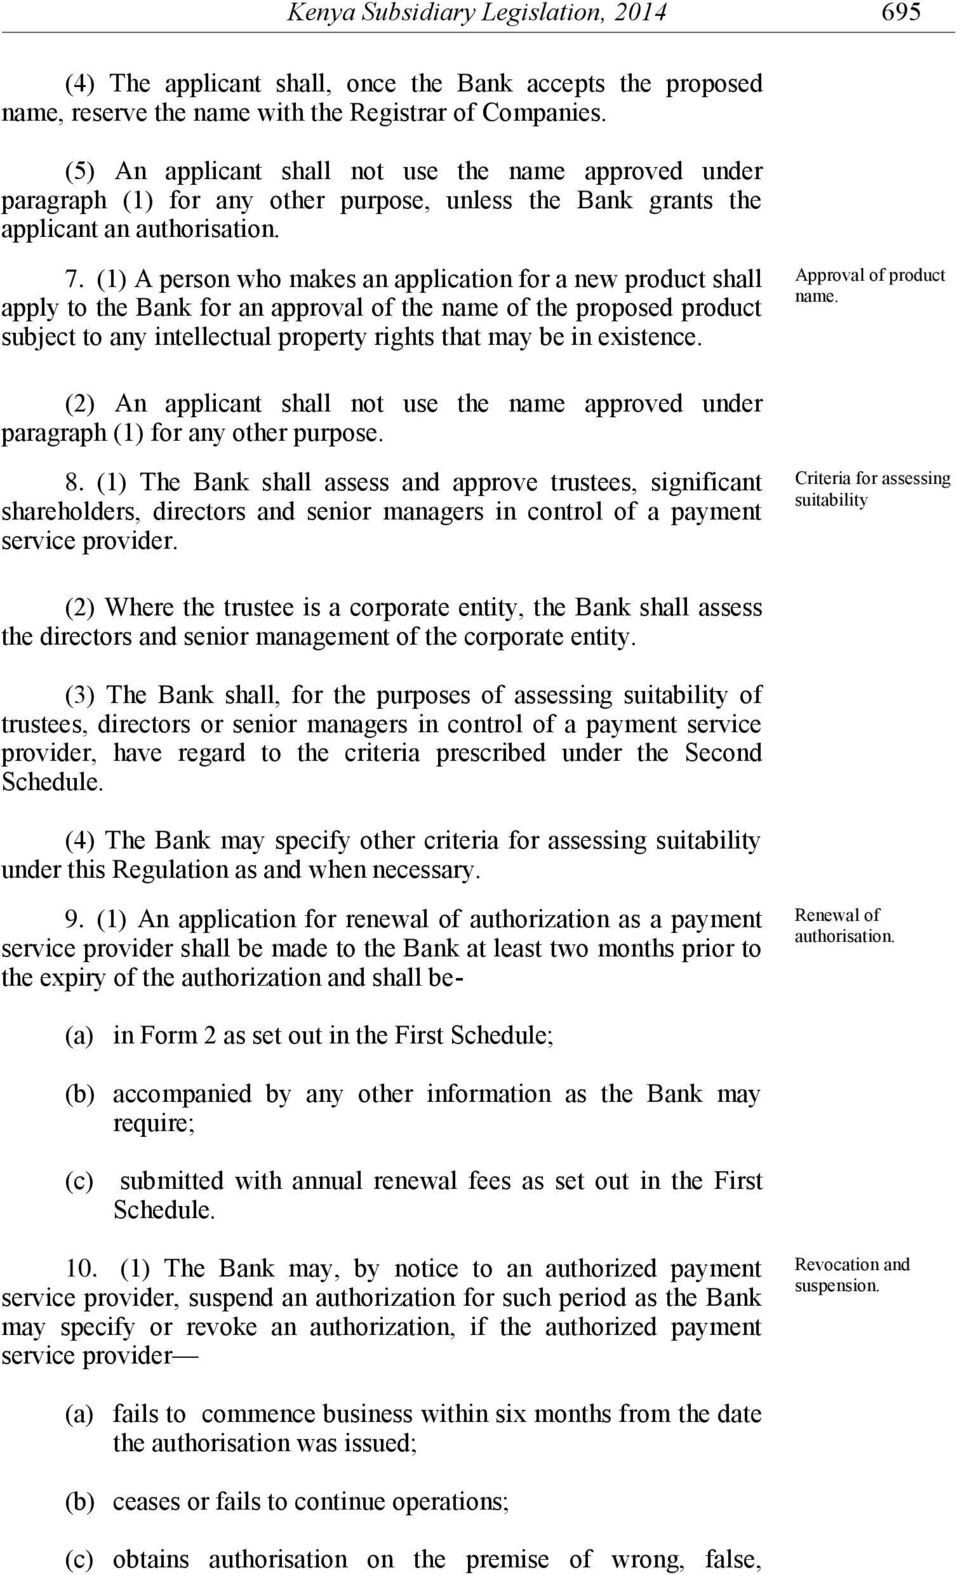 (1) A person who makes an application for a new product shall apply to the Bank for an approval of the name of the proposed product subject to any intellectual property rights that may be in